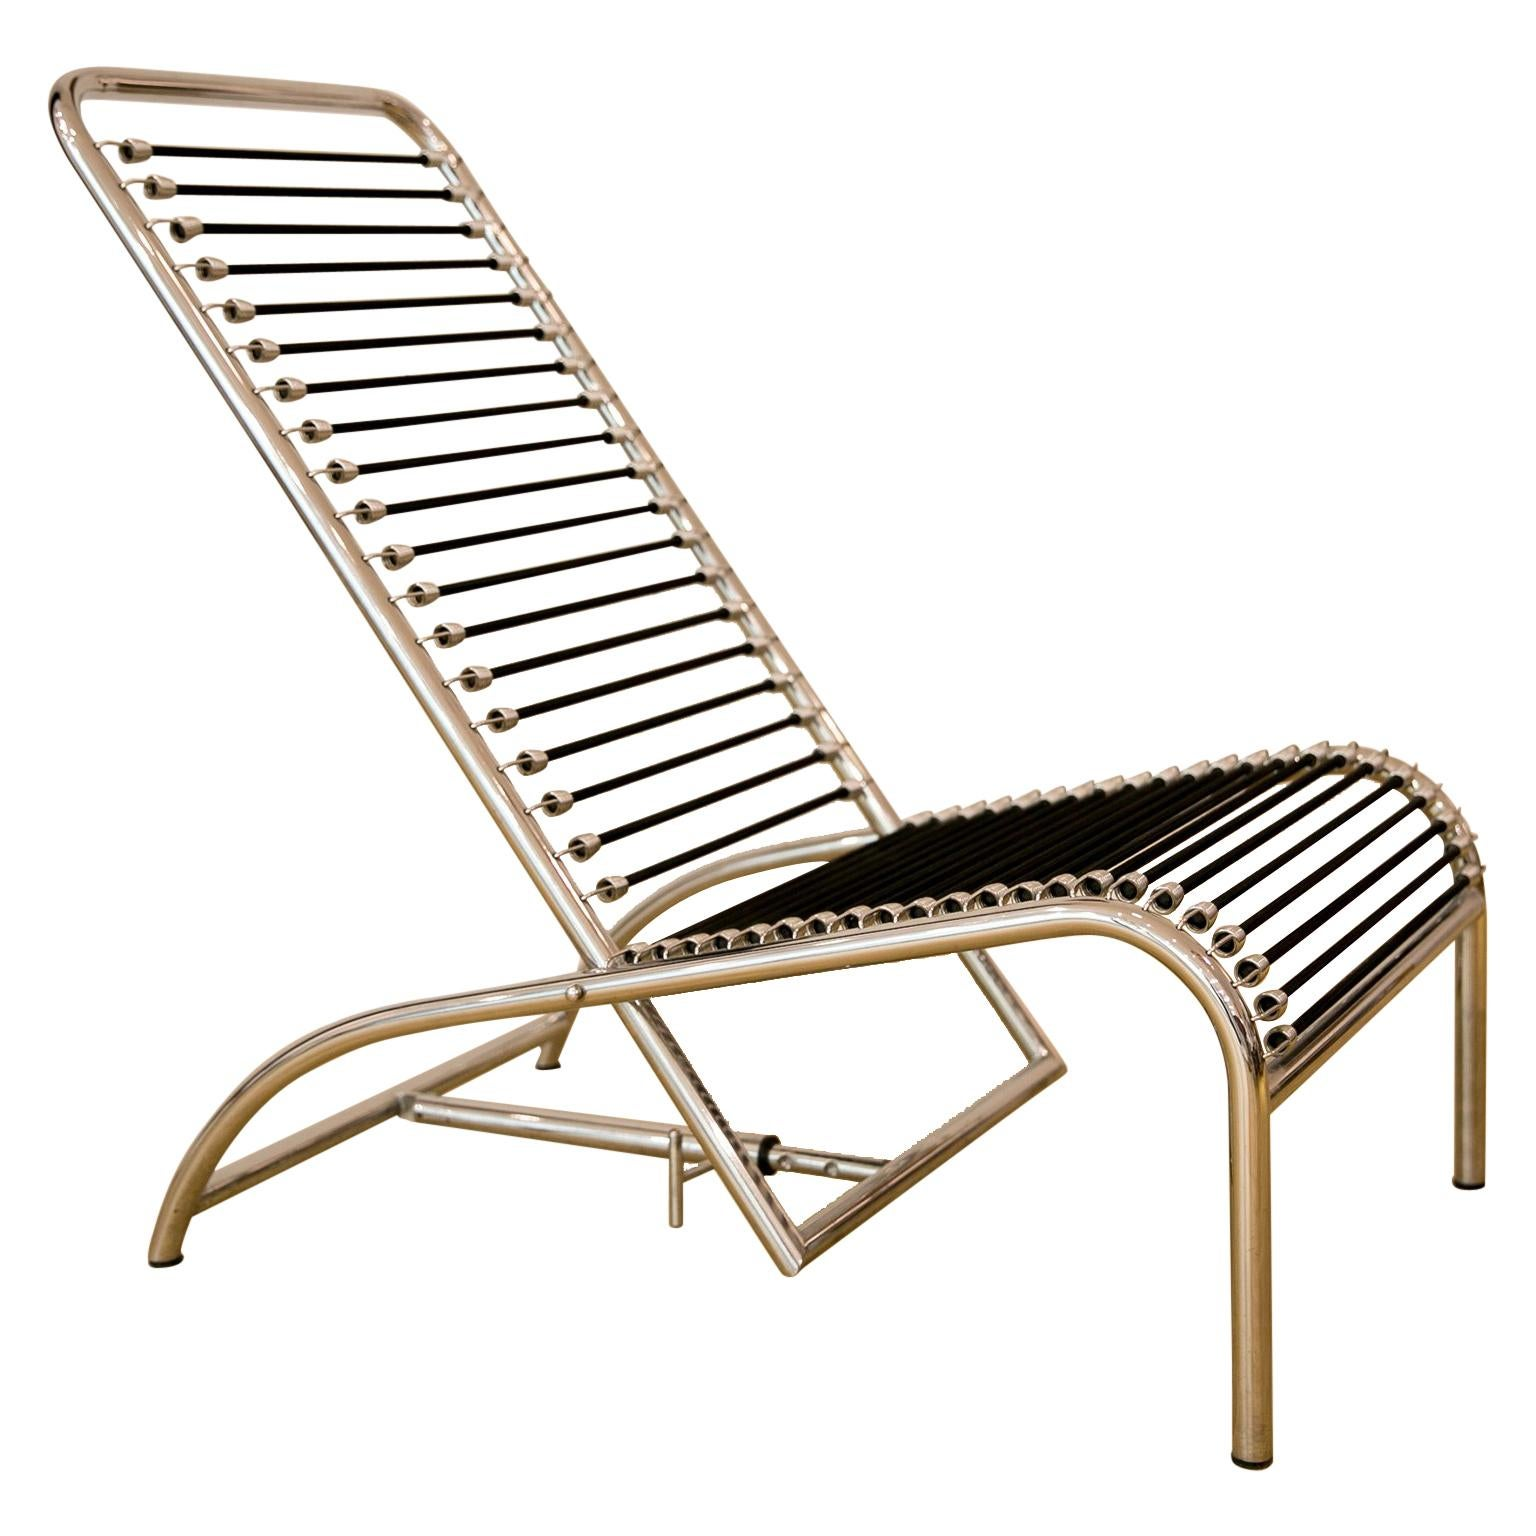 Modernist René Herbst Chair Lounge By zVpUMSq